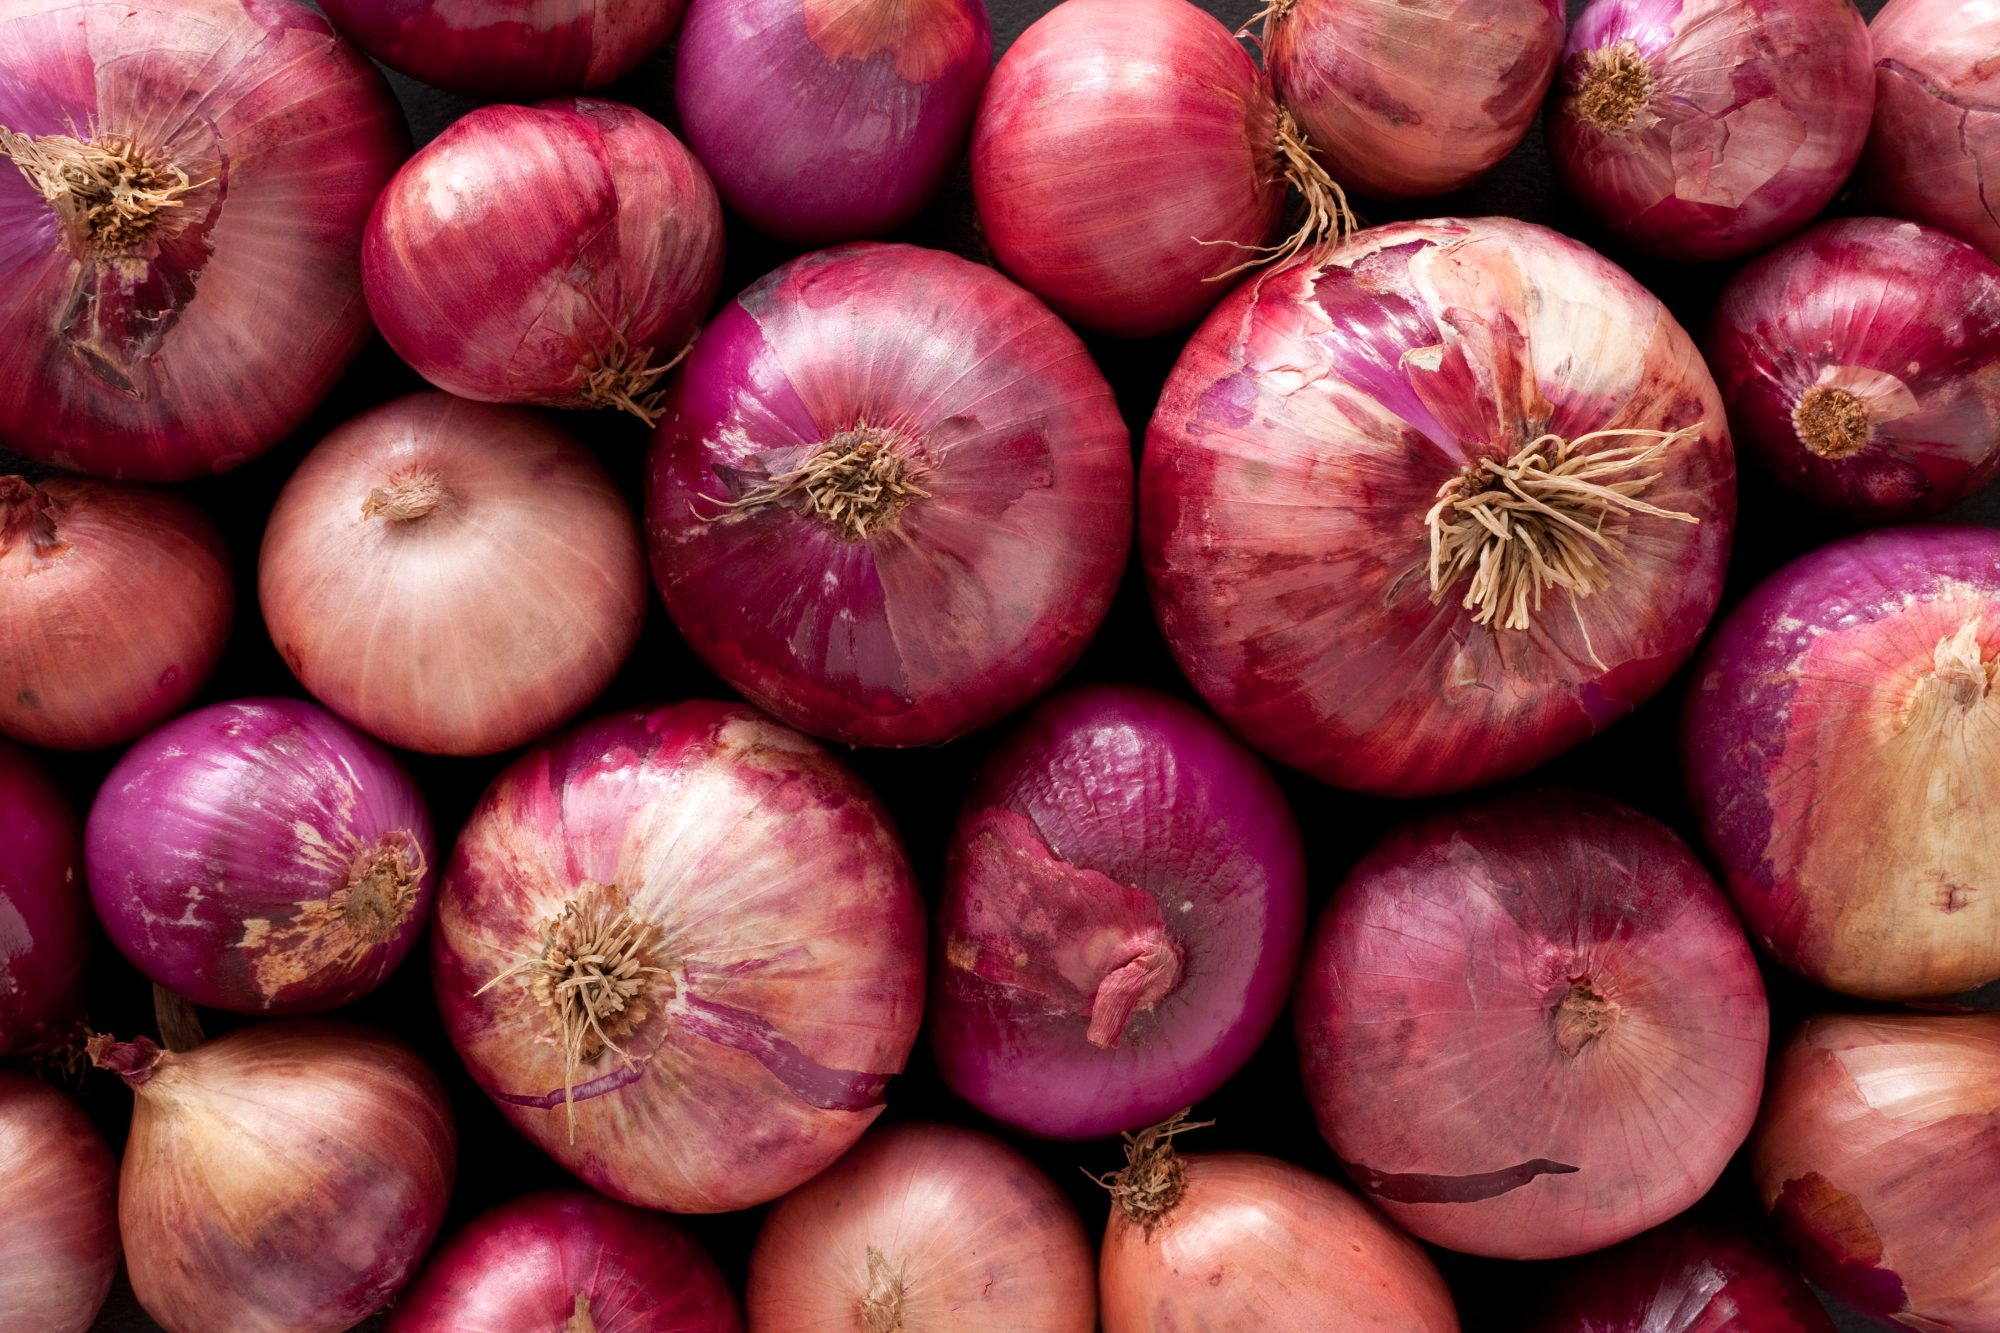 Red onion pile Getty 6/15/20